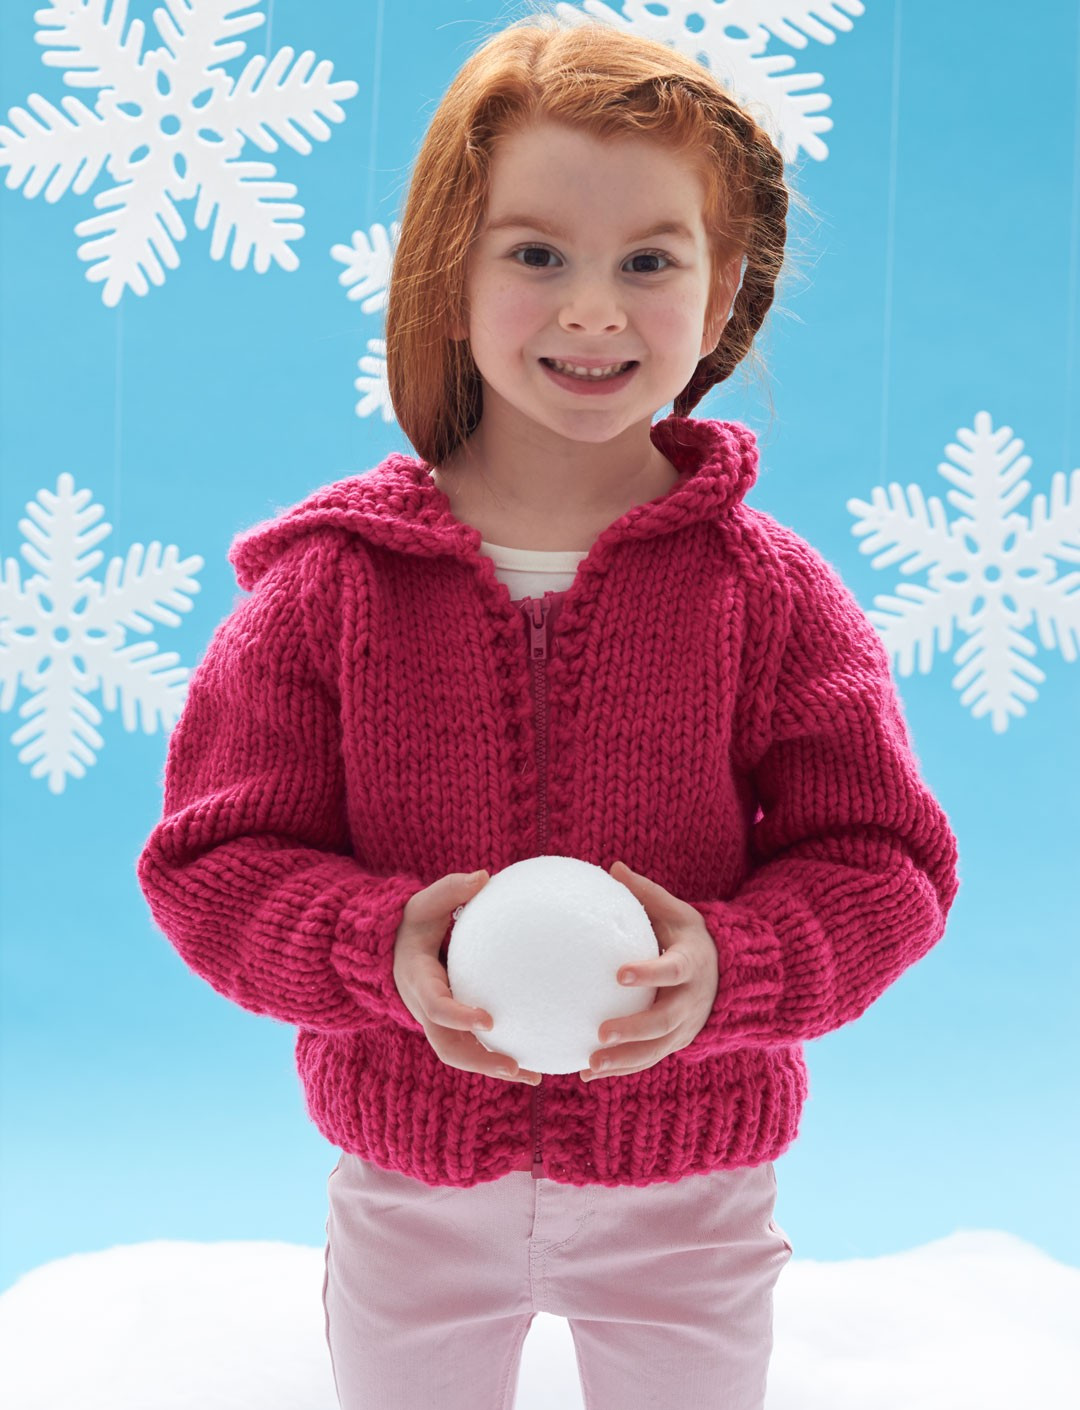 Best Of Little E Hoo Knitting Patterns Knitting Patterns for Childrens Sweaters Of Charming 47 Models Knitting Patterns for Childrens Sweaters